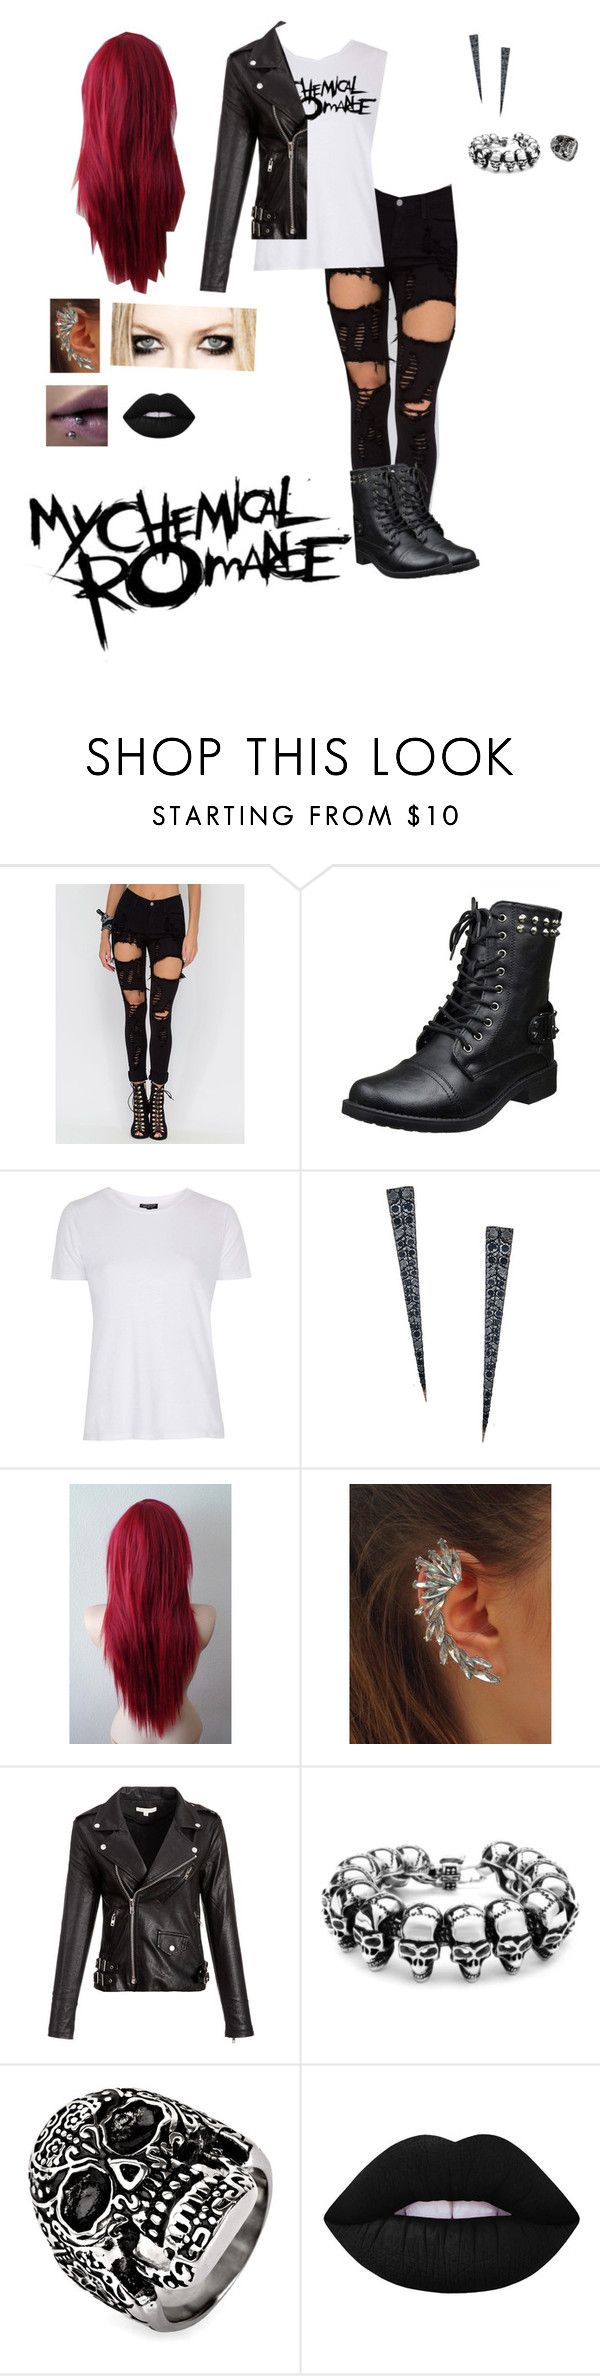 """My Chemical Romance"" by pinkglitter4170 ❤ liked on Polyvore featuring Topshop, Lana, West Coast Jewelry and Lime Crime"